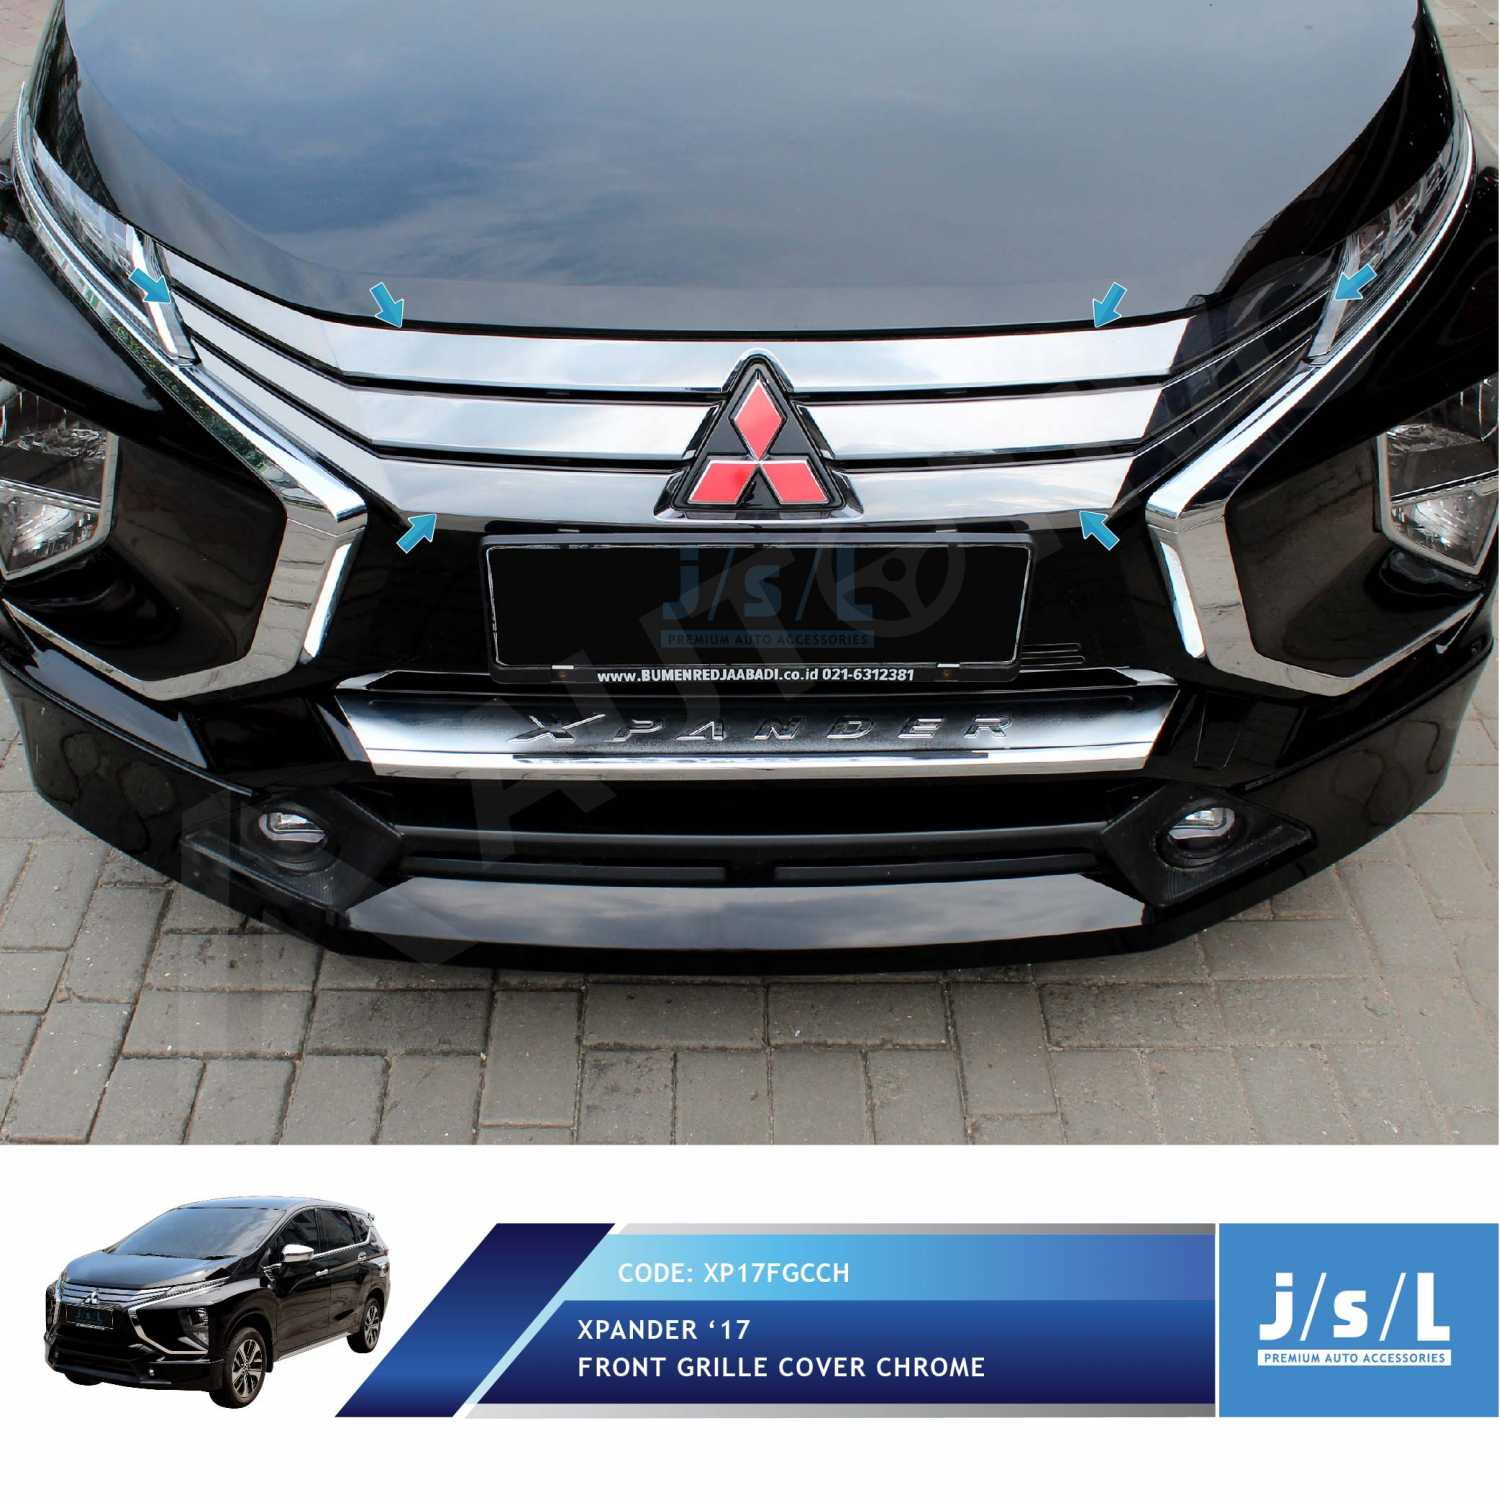 Jual Xpander Grill Depan Cover Krom JSL Front Grille Cover Chrome | Jakmall.com